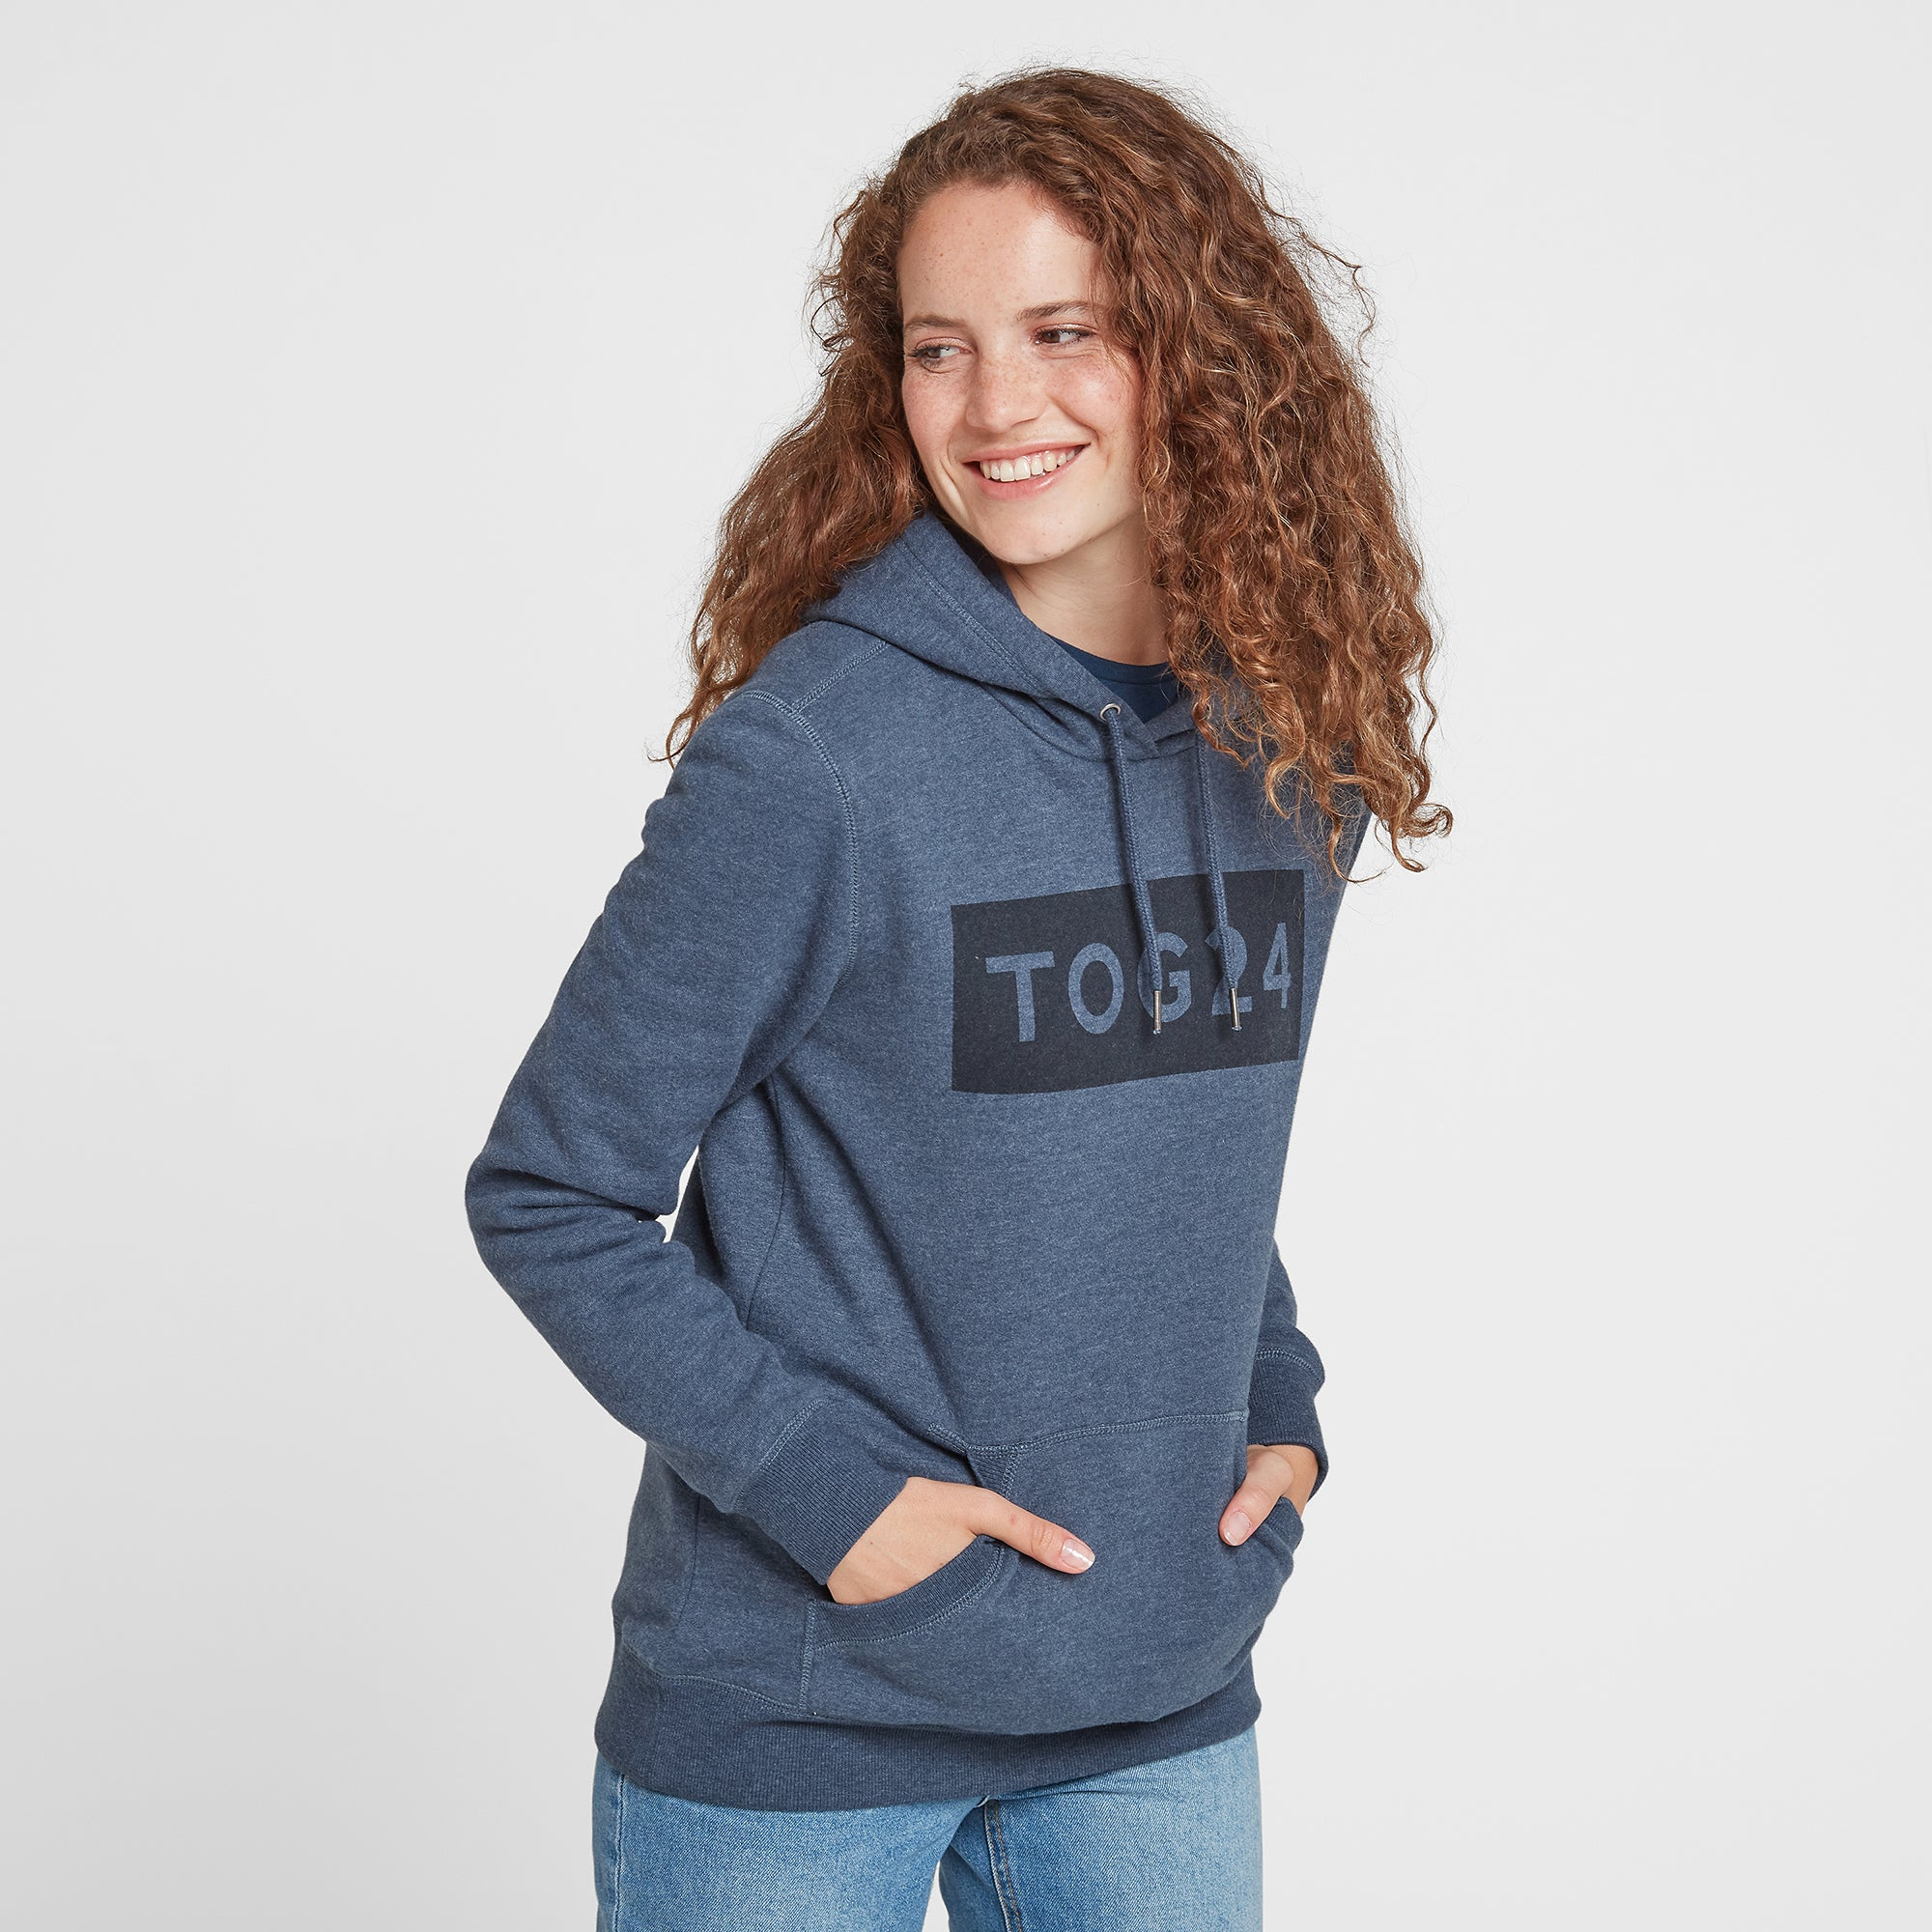 Cora Womens Hoody Tog24 Print - Atlantic Blue Marl